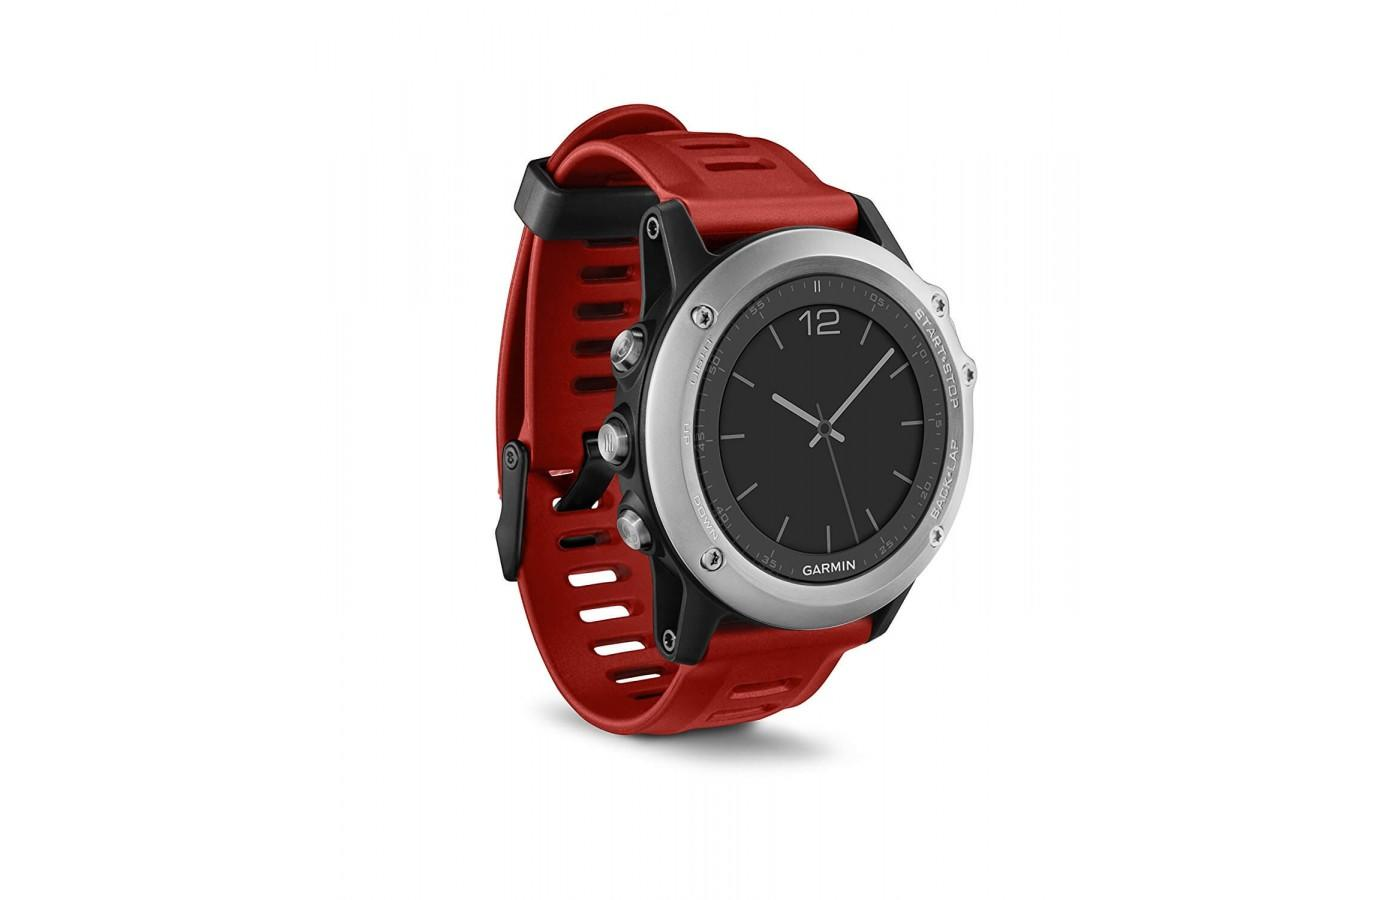 the Garmin fenix 3 is a stylish activity monitor